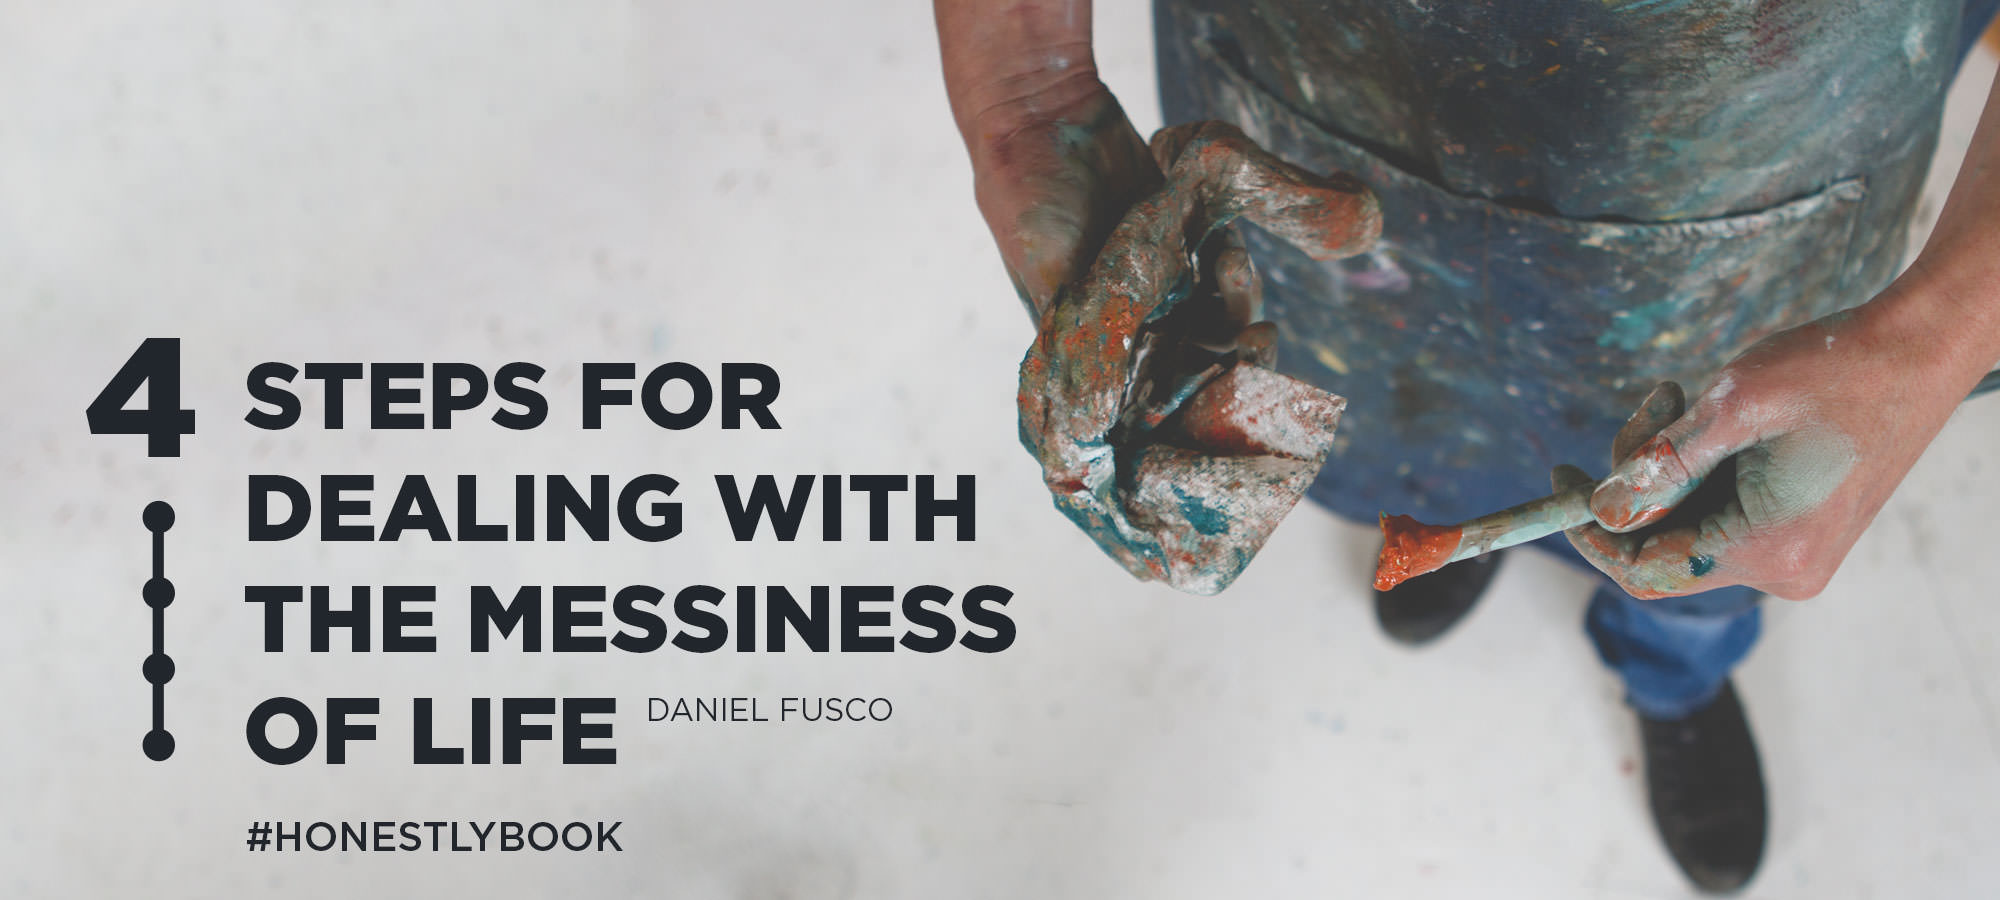 Four Steps for Dealing with the Messiness of Life